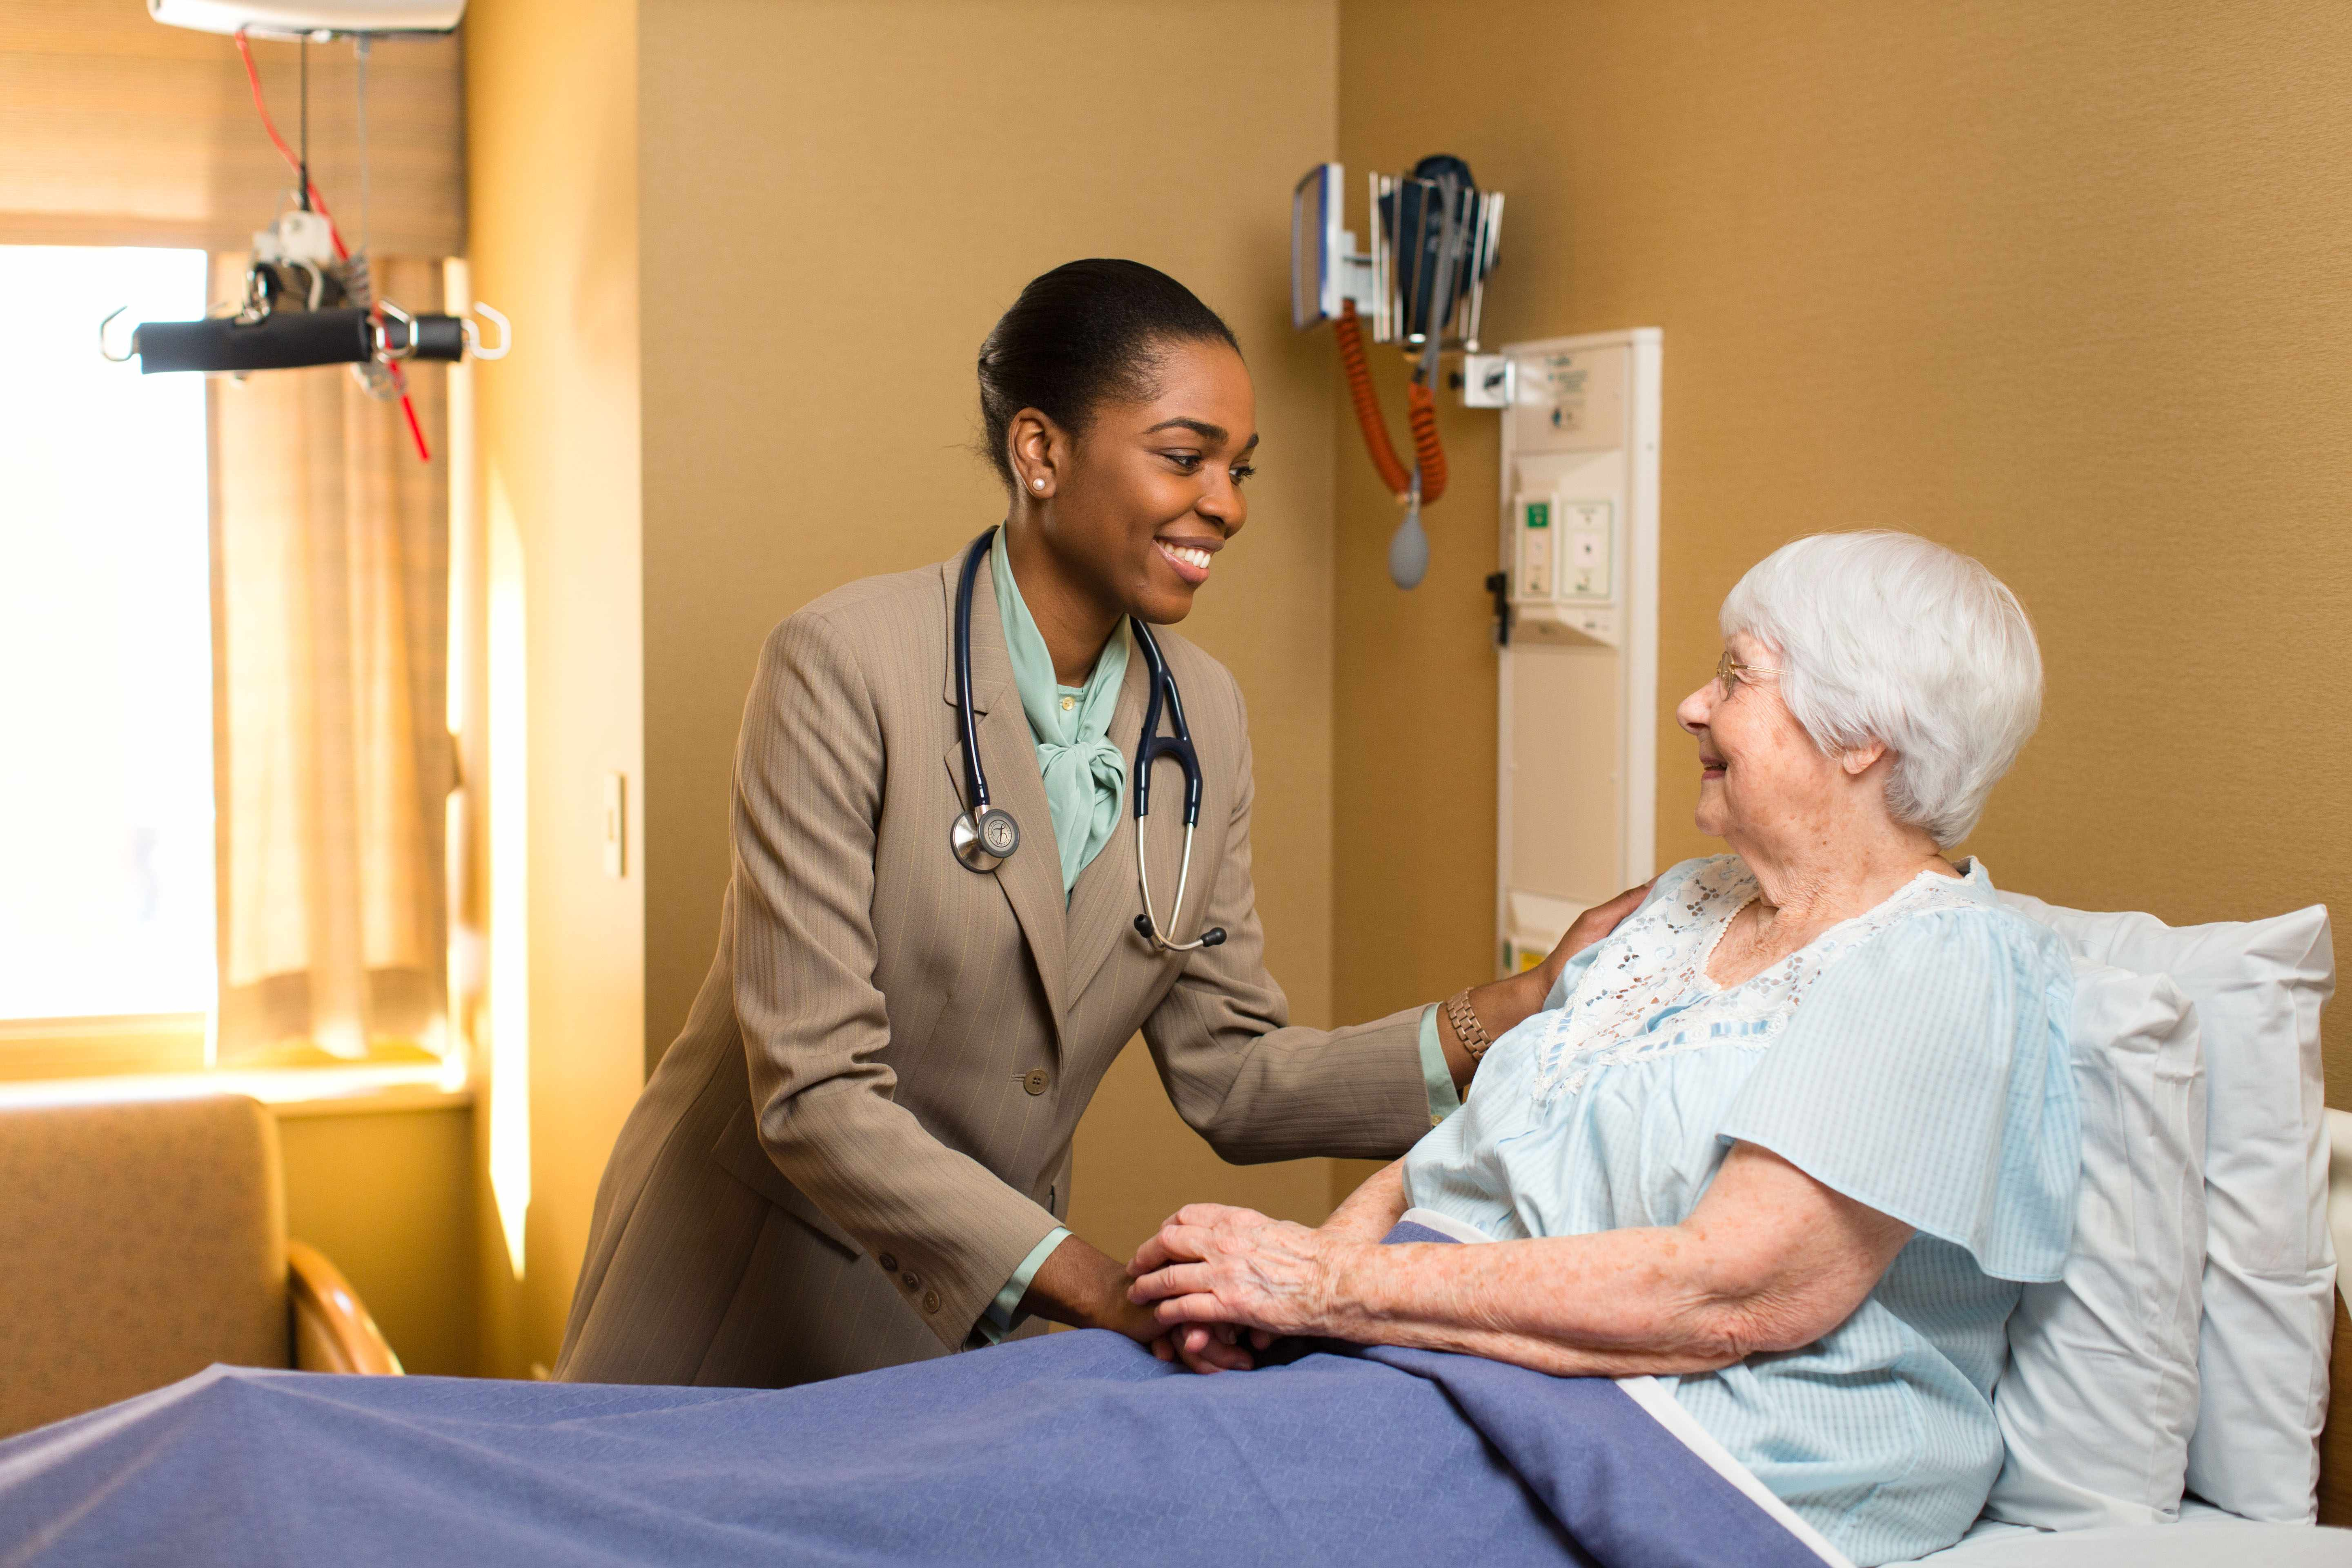 physician speaking with, examining elderly patient in hospital bed